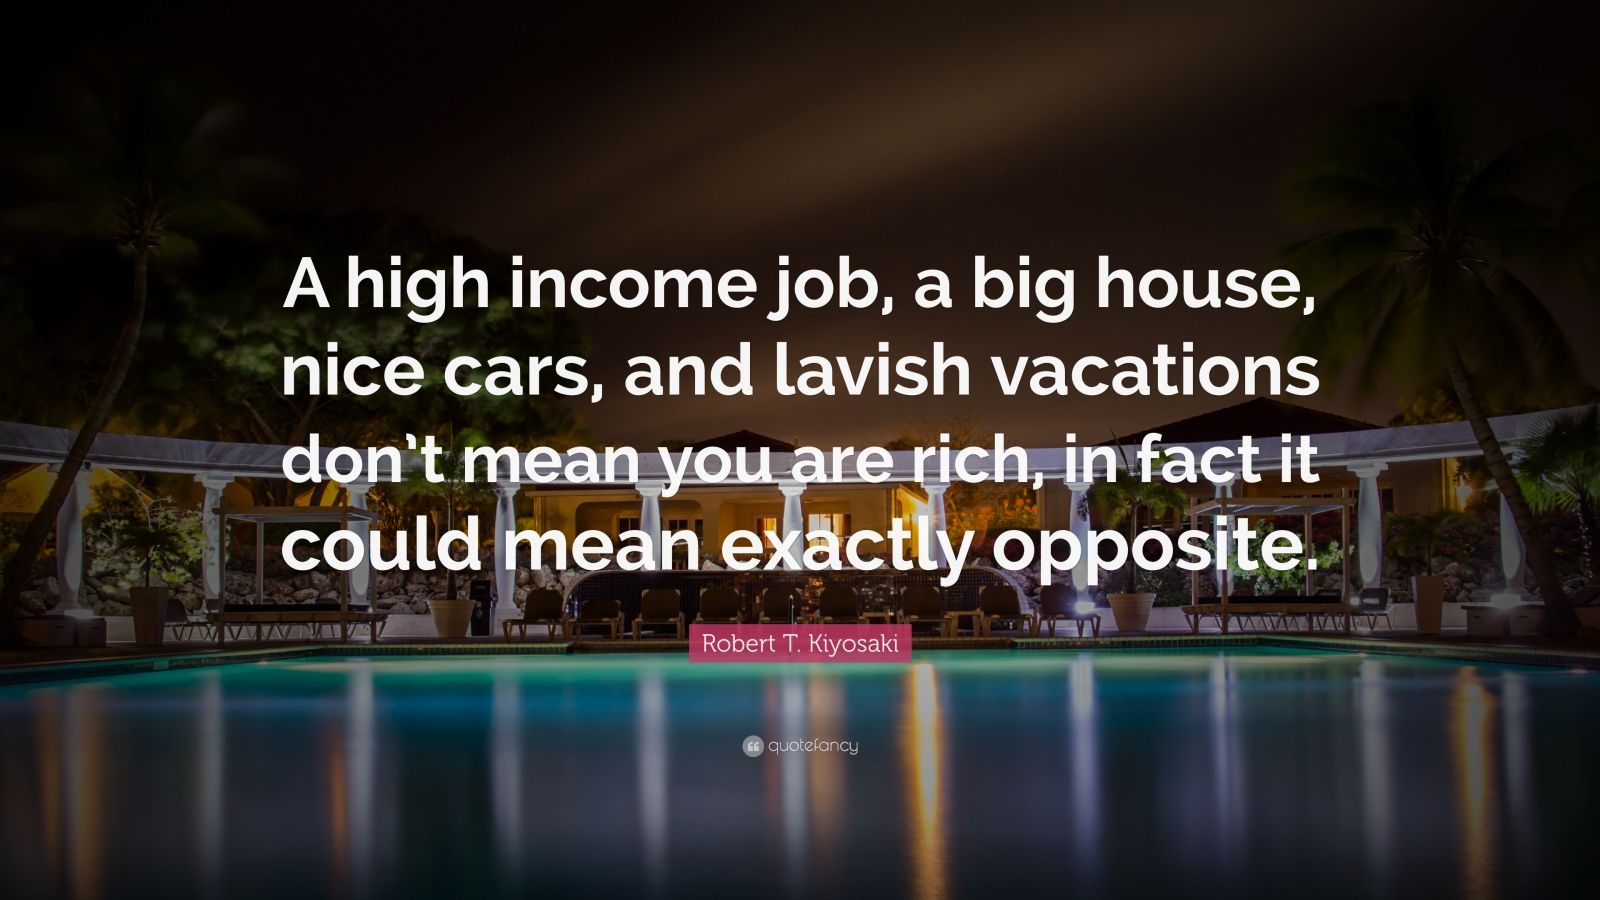 "Robert T. Kiyosaki Quote: ""A high income job, a big house, nice cars, and lavish vacations don't mean you are rich, in fact it could mean exactly opposite."""